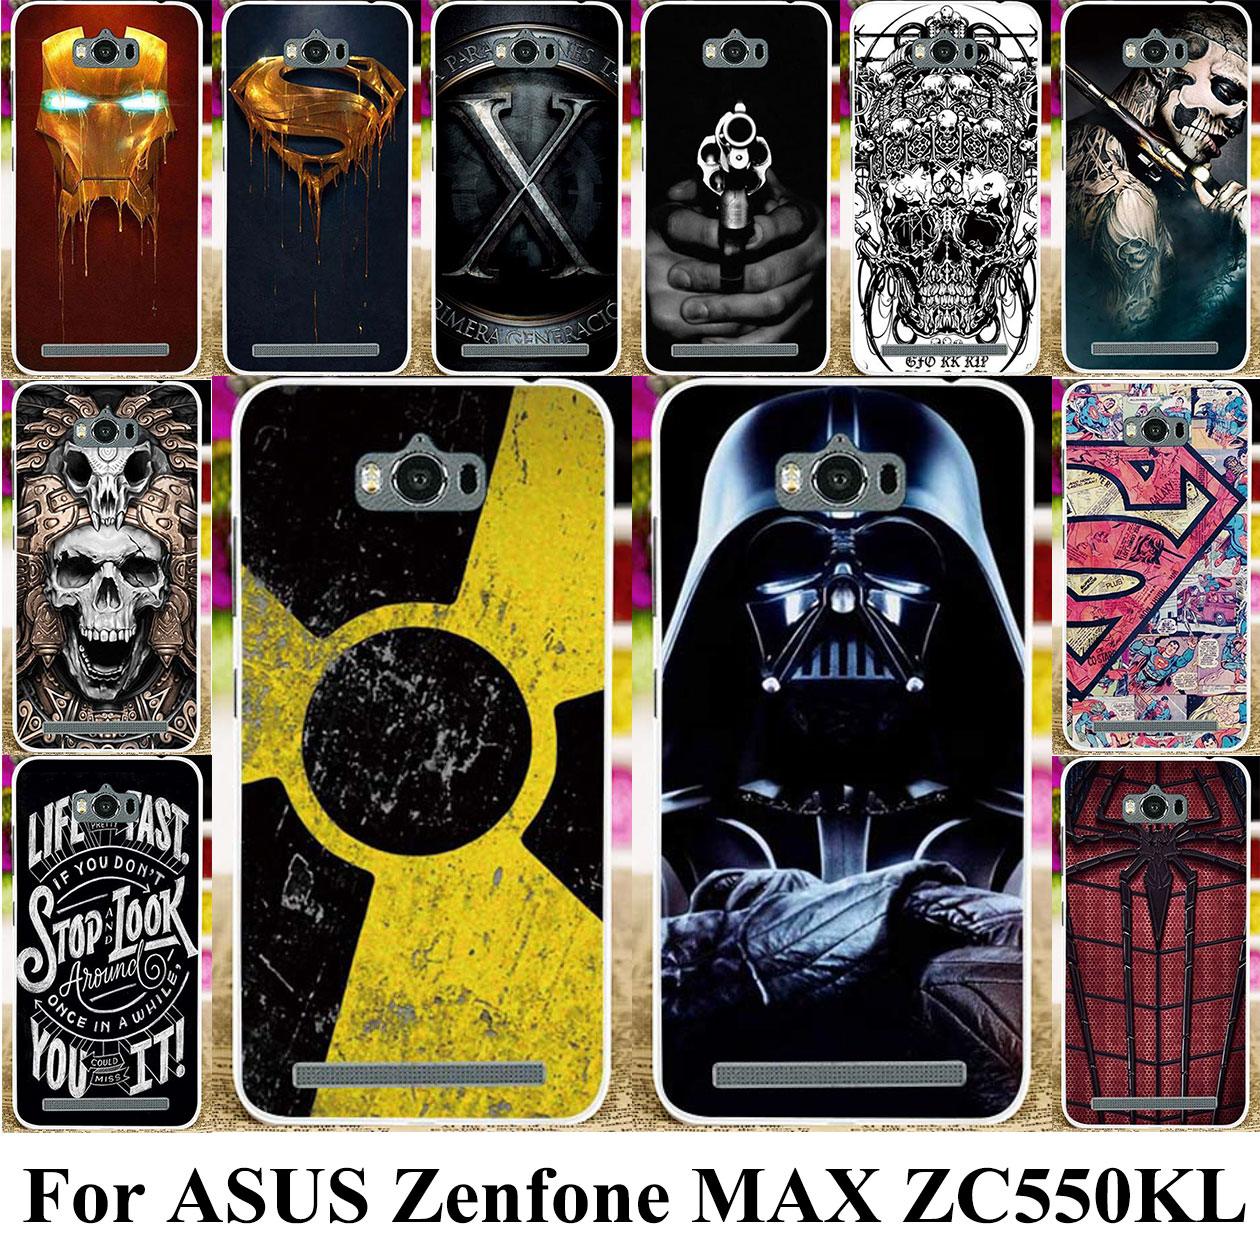 TPU Silicone Phone Case For <font><b>ASUS</b></font> Zenfone MAX <font><b>ASUS</b></font>_<font><b>Z010DD</b></font> Z010D ZC550KL Z010DA 5.5 inch Bag Cover Case Cover image